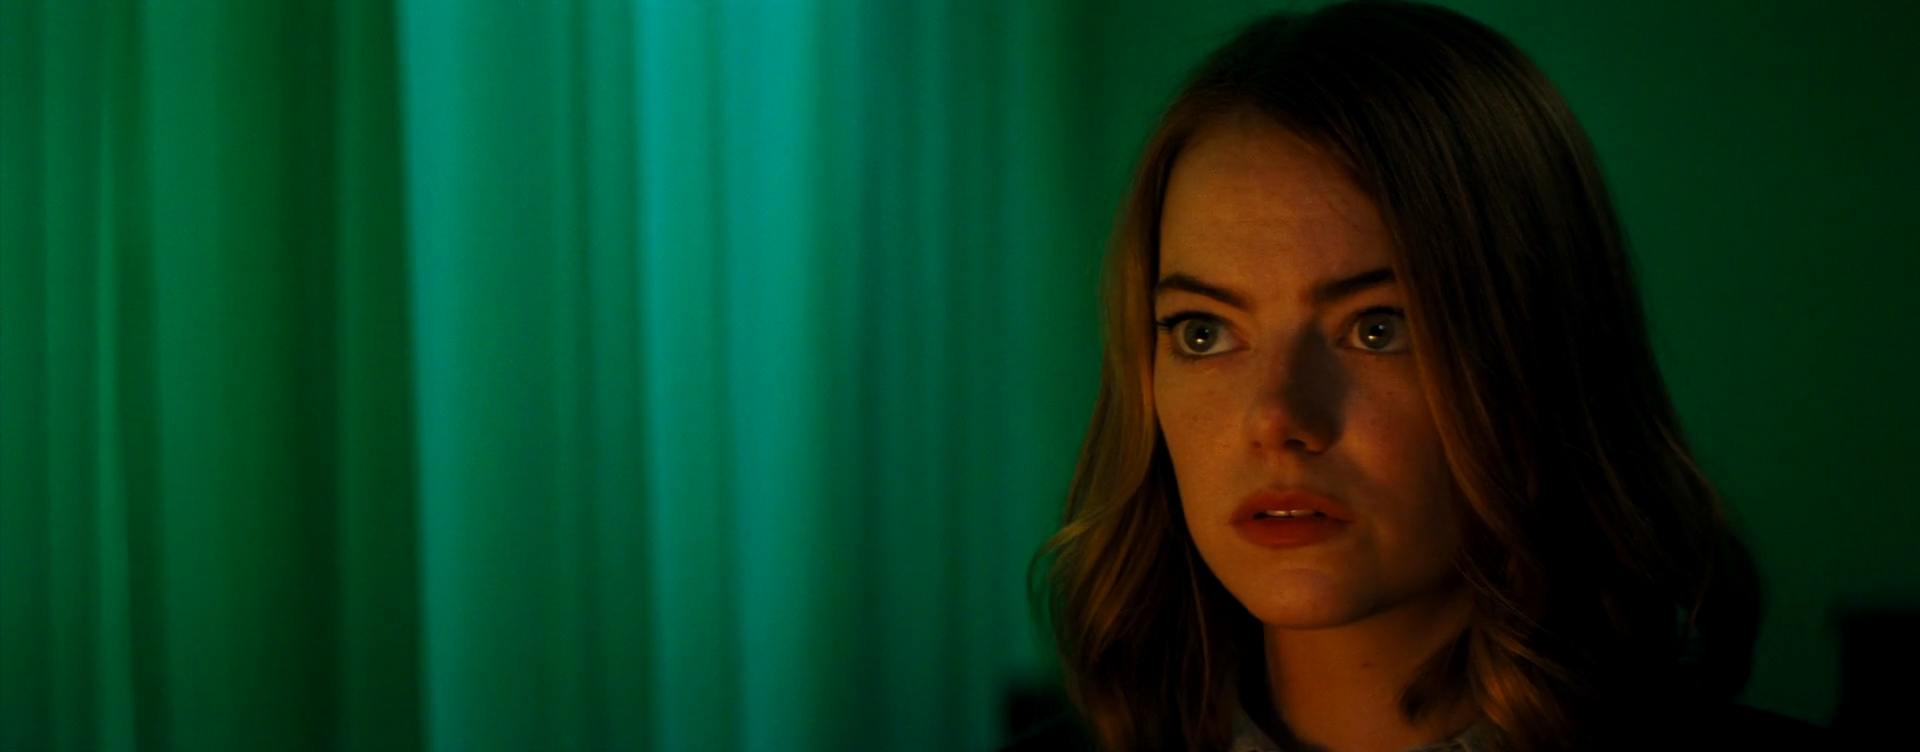 Emma Stone in La La Land (2016)